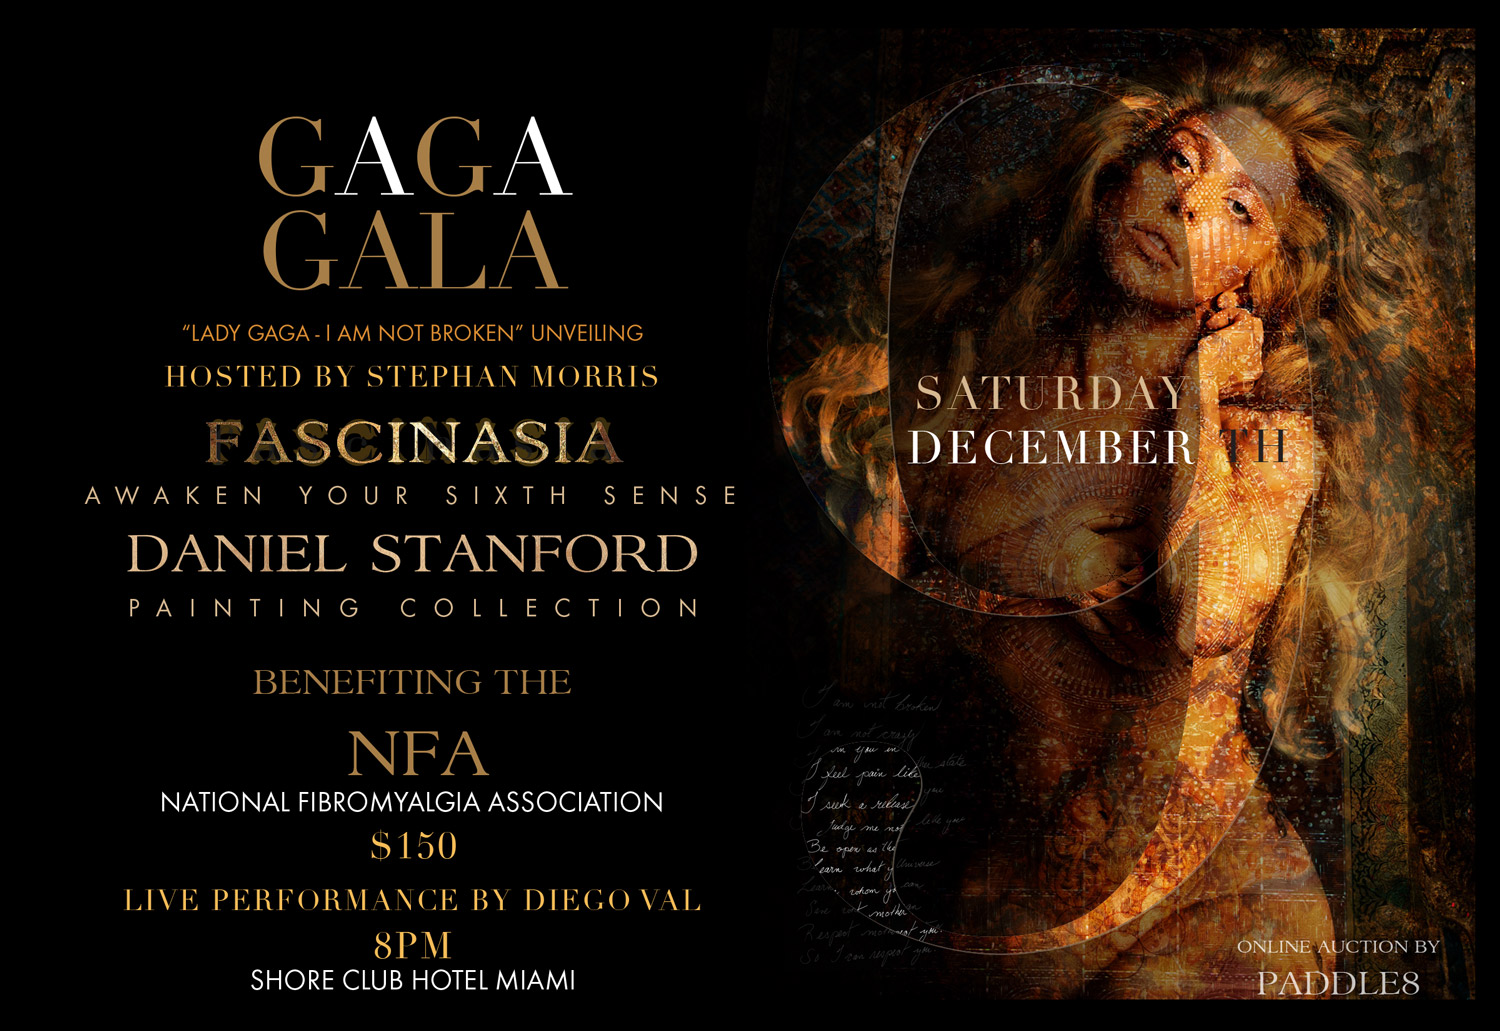 """Saturday Dec 9th The highlight of the week ends with the Gaga Gala a National Fibromyalgia Association (NFA) Fundraiser [501(c) 3] teamed up with Lady Gaga's Born this Way Foundation and the unveiling of the transformative Lady Gaga portrait, """"I AM NOT BROKEN"""" with reproduction copies being auctioned off as well as precious collectable jewelry and beauty products for bid. Attire 'Wear Your Truth' Black Tie Optional - Celebrity Chef sponsored by PDF Foods & Ron Barceló from 8pm until midnight."""